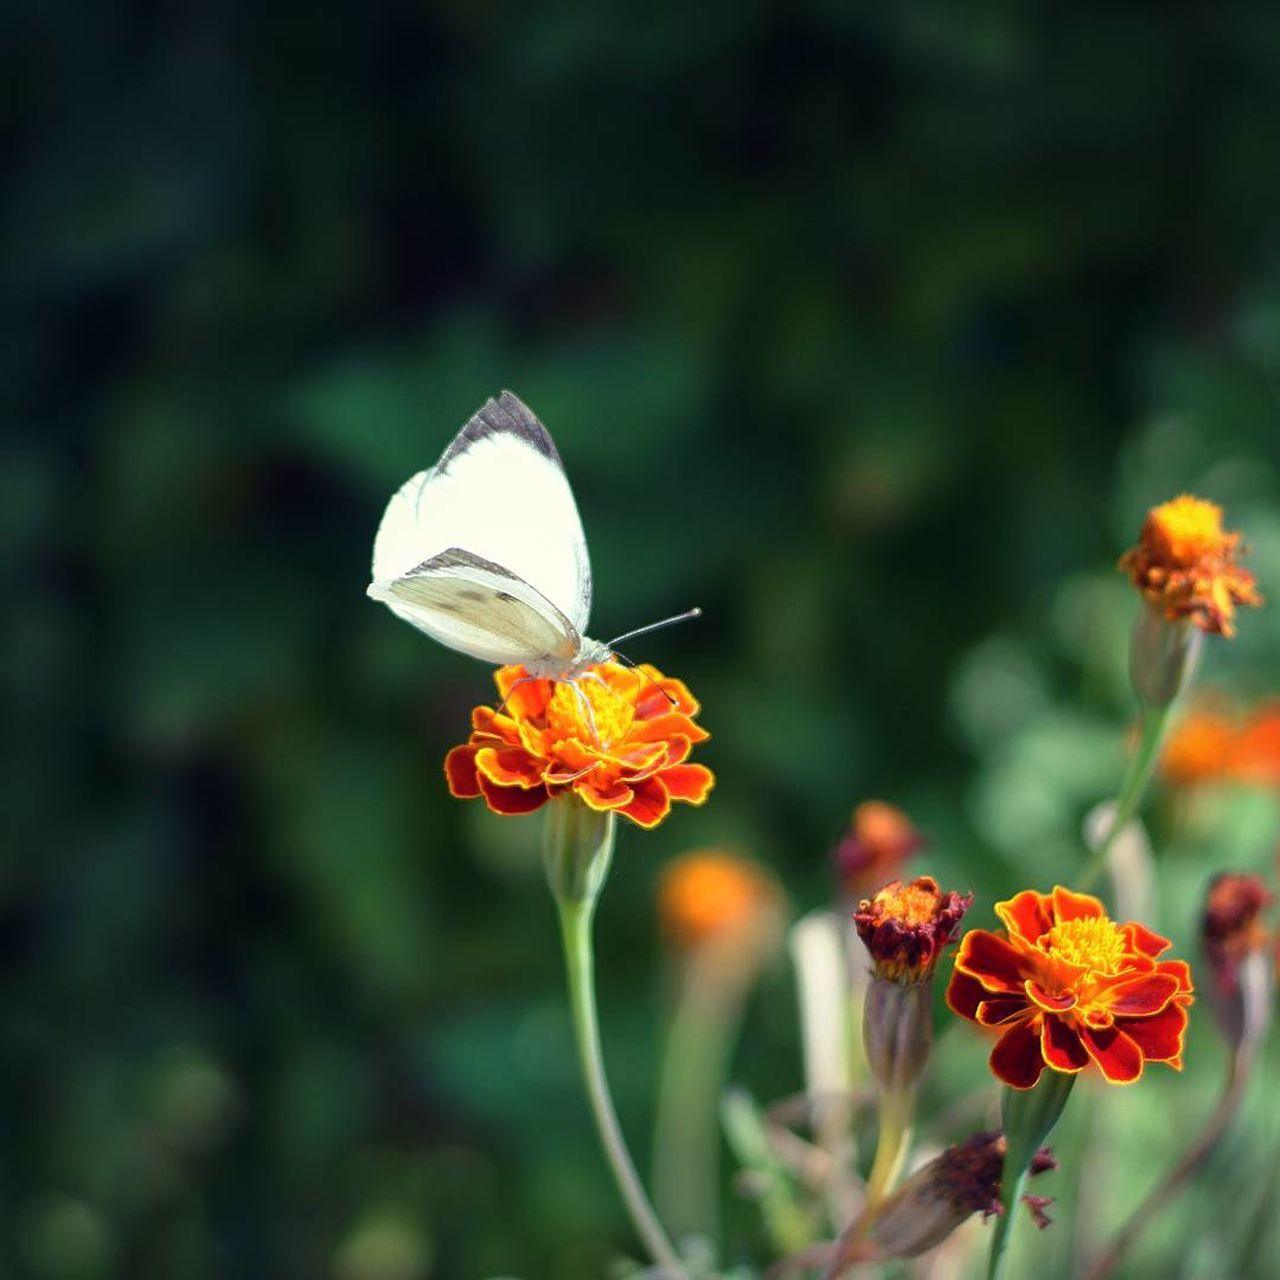 flower, growth, petal, nature, plant, beauty in nature, freshness, fragility, flower head, no people, day, focus on foreground, outdoors, blooming, close-up